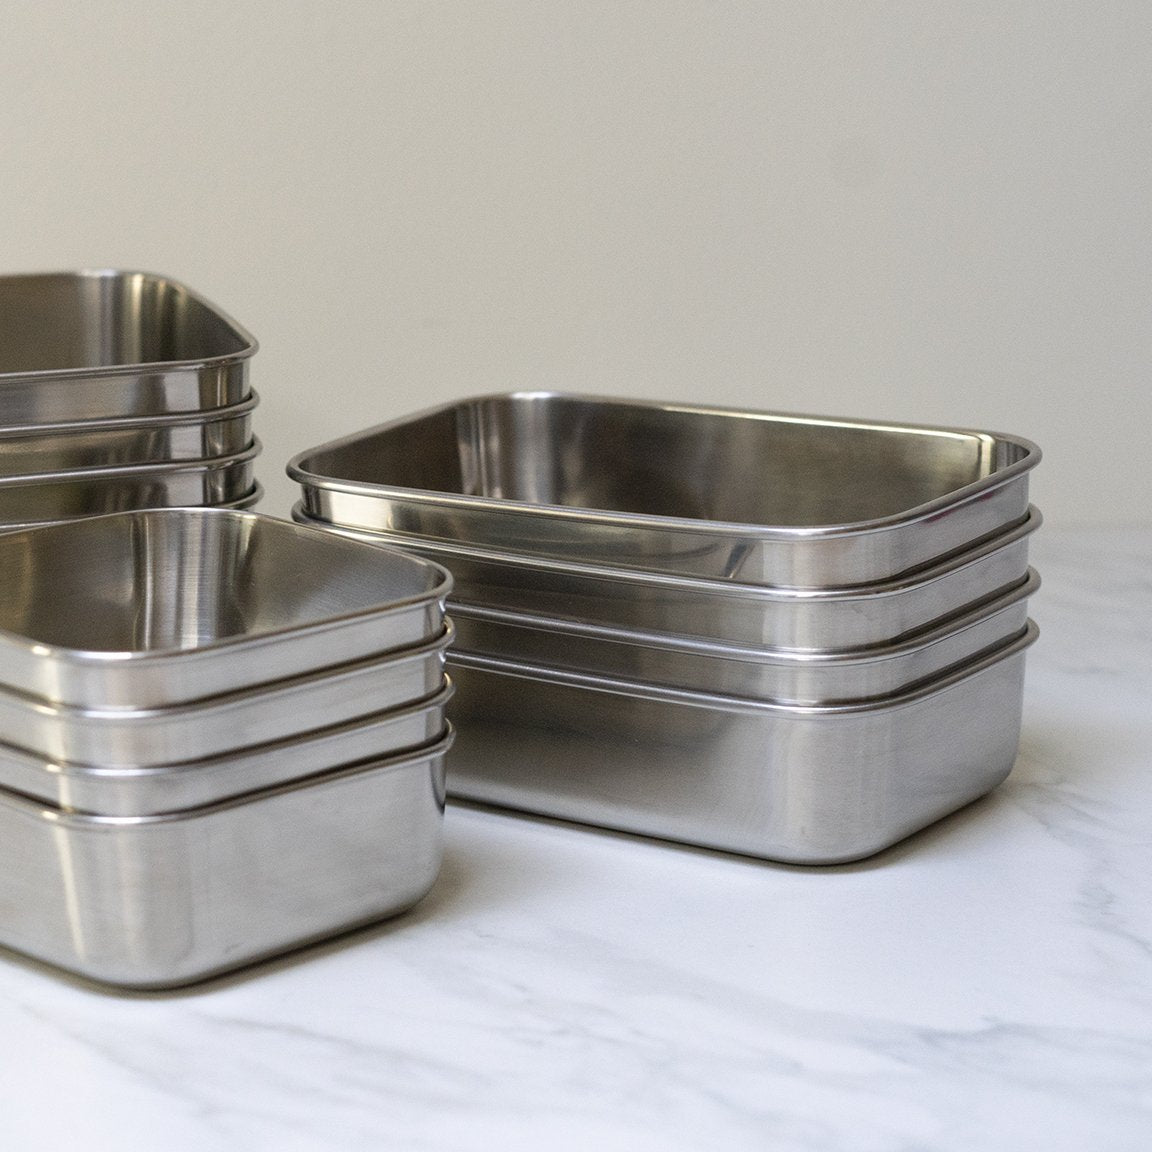 Divided Stainless Steel Rectangle Containers